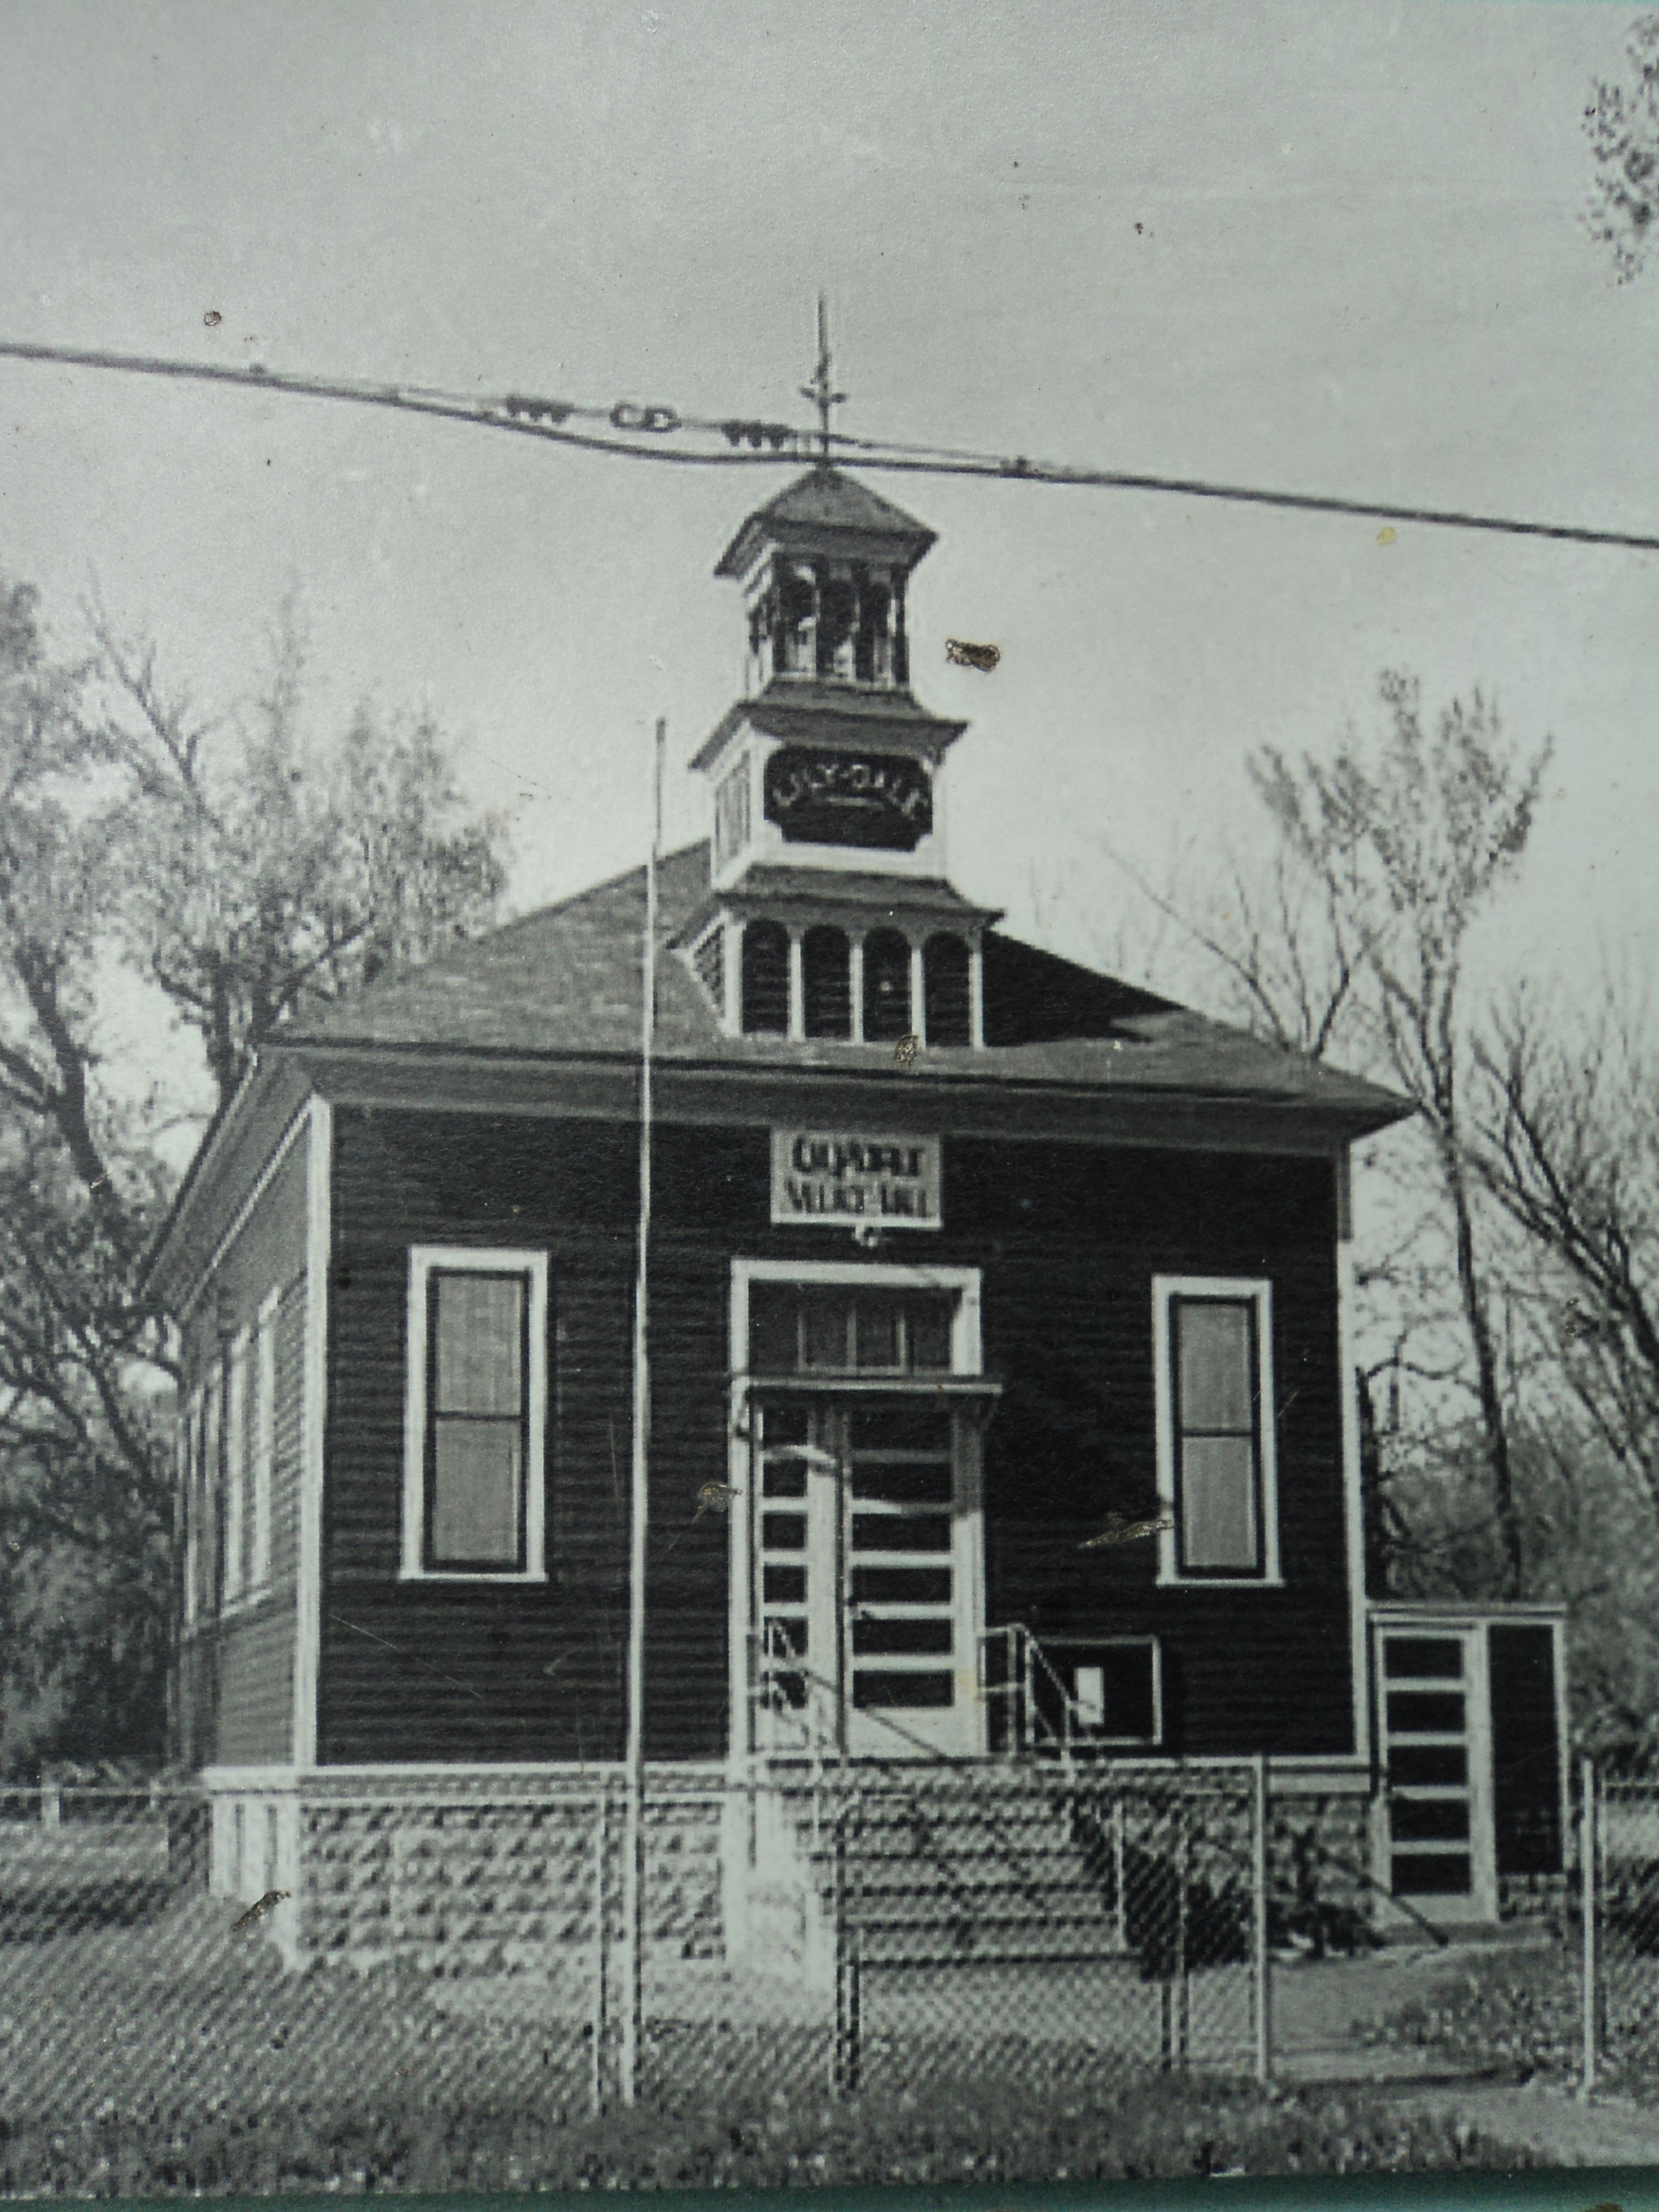 Lilydale's history